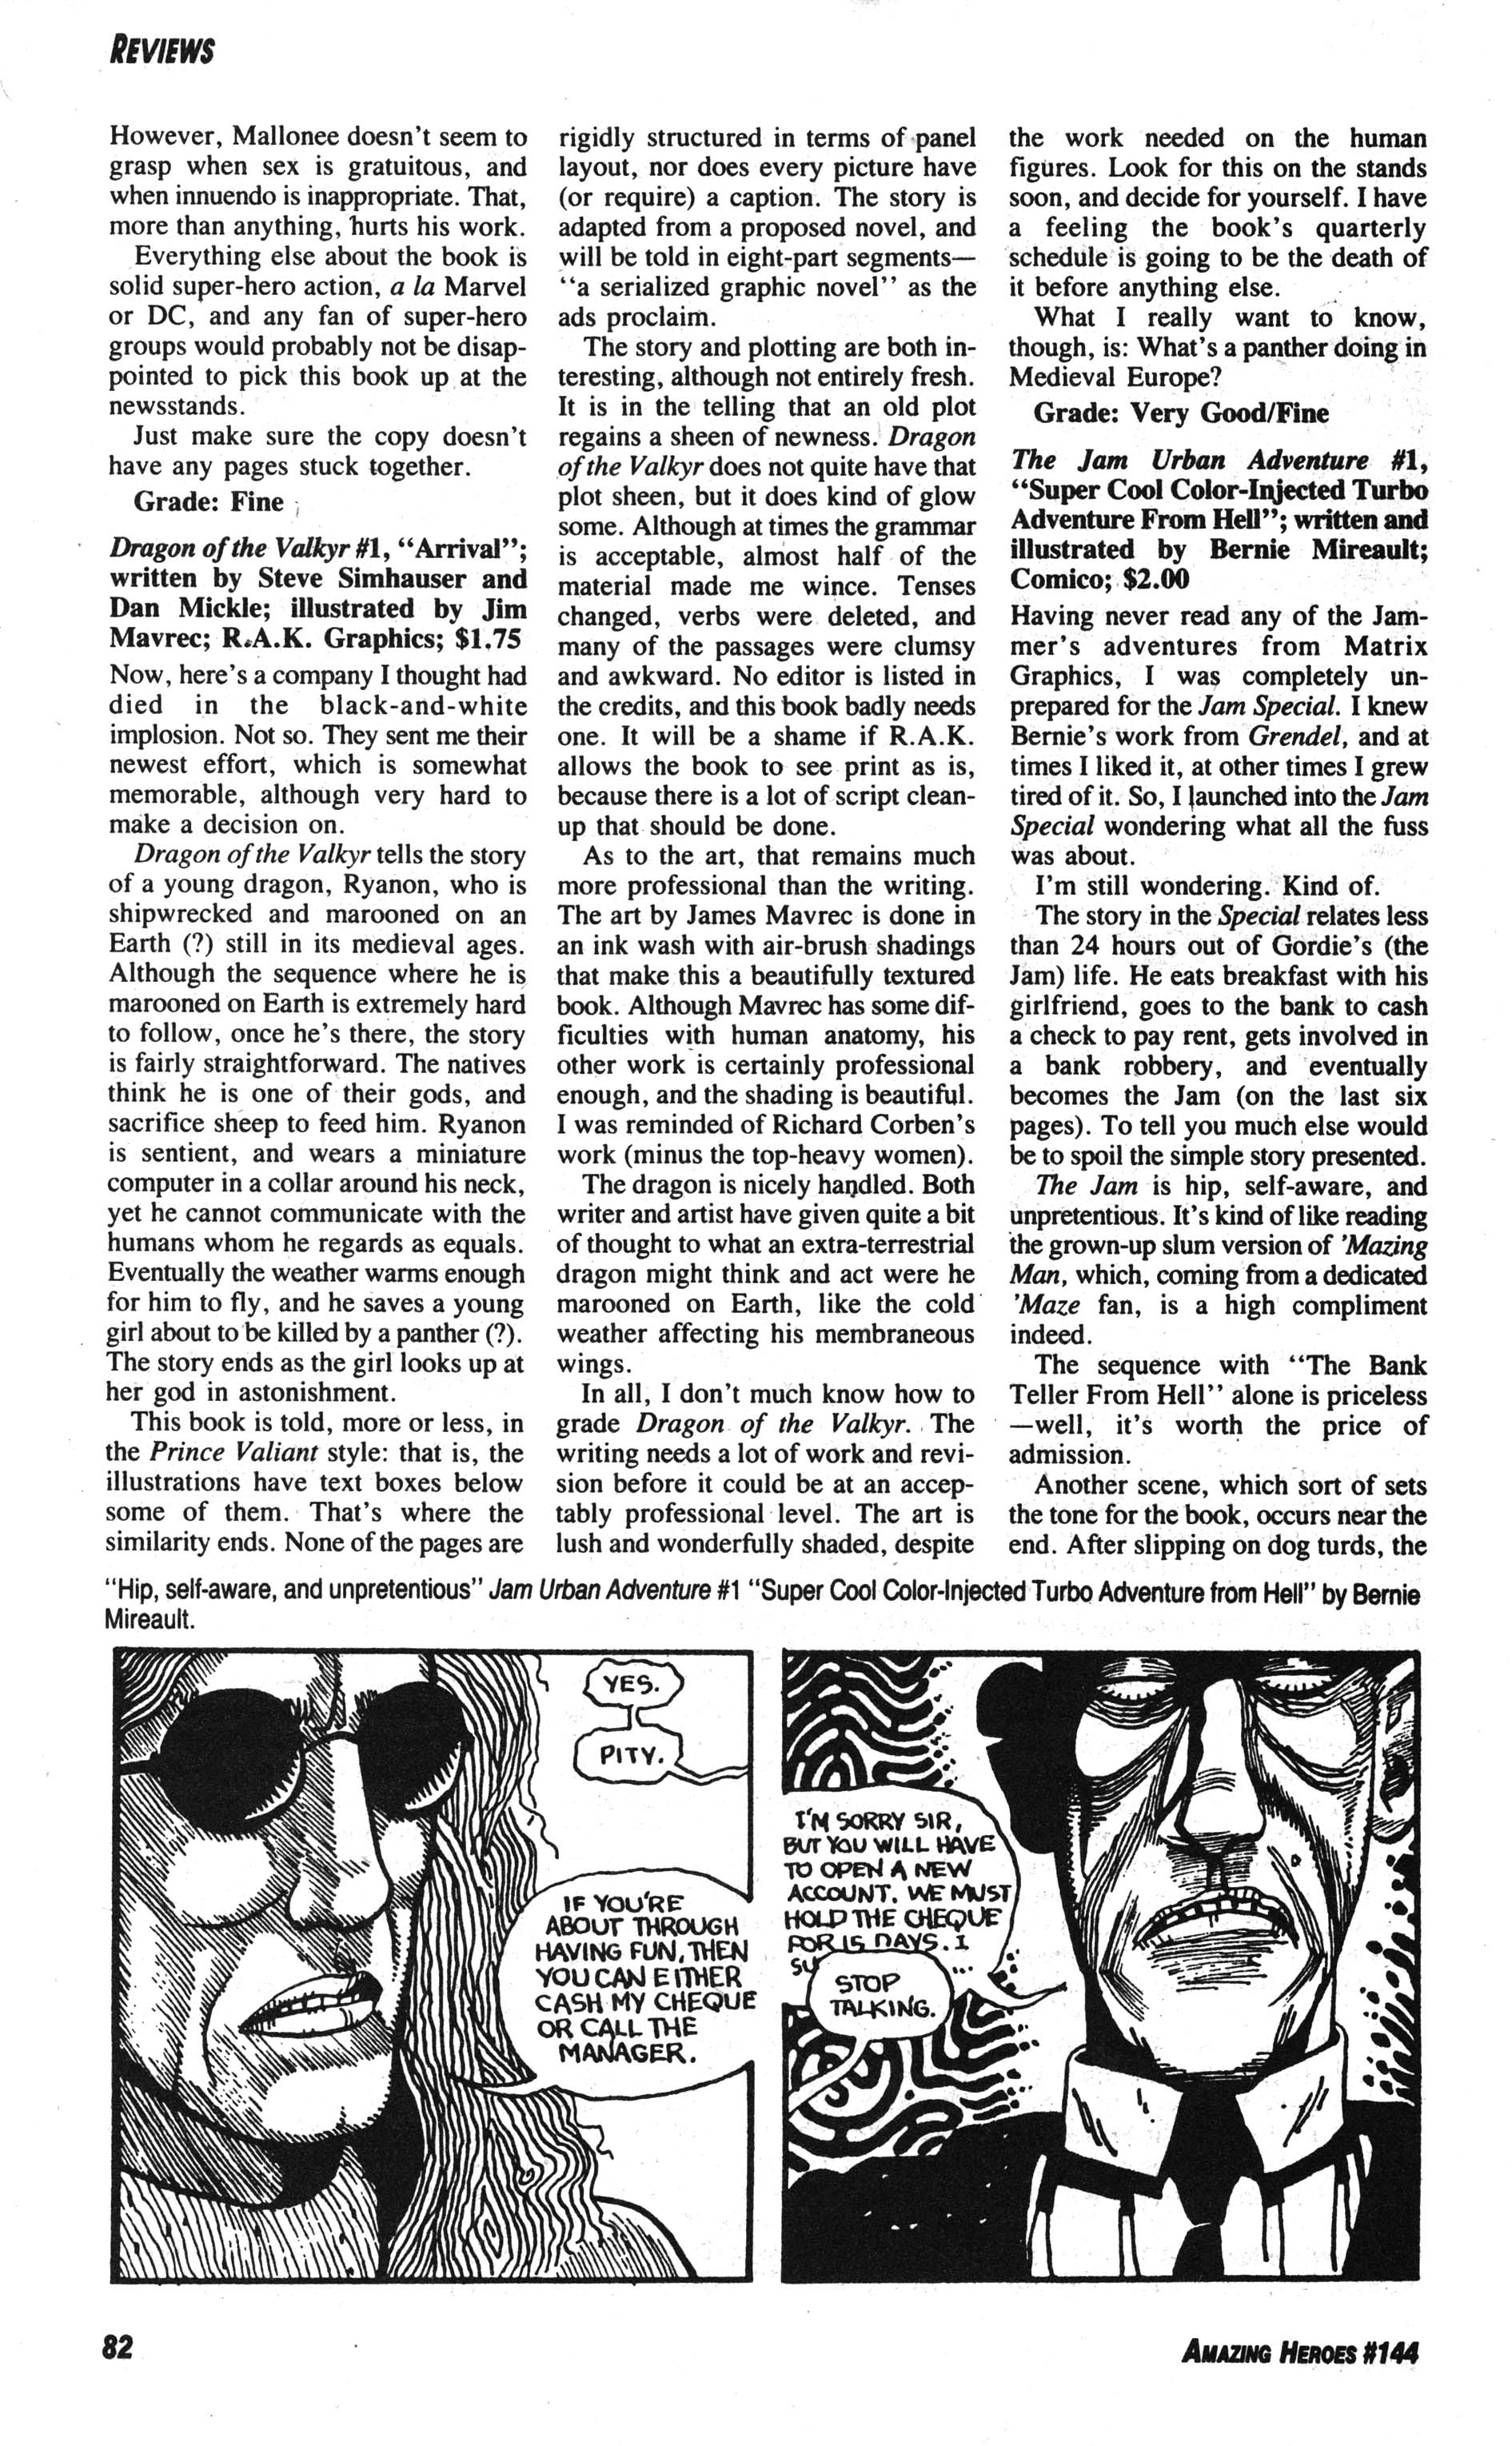 Read online Amazing Heroes comic -  Issue #144 - 82